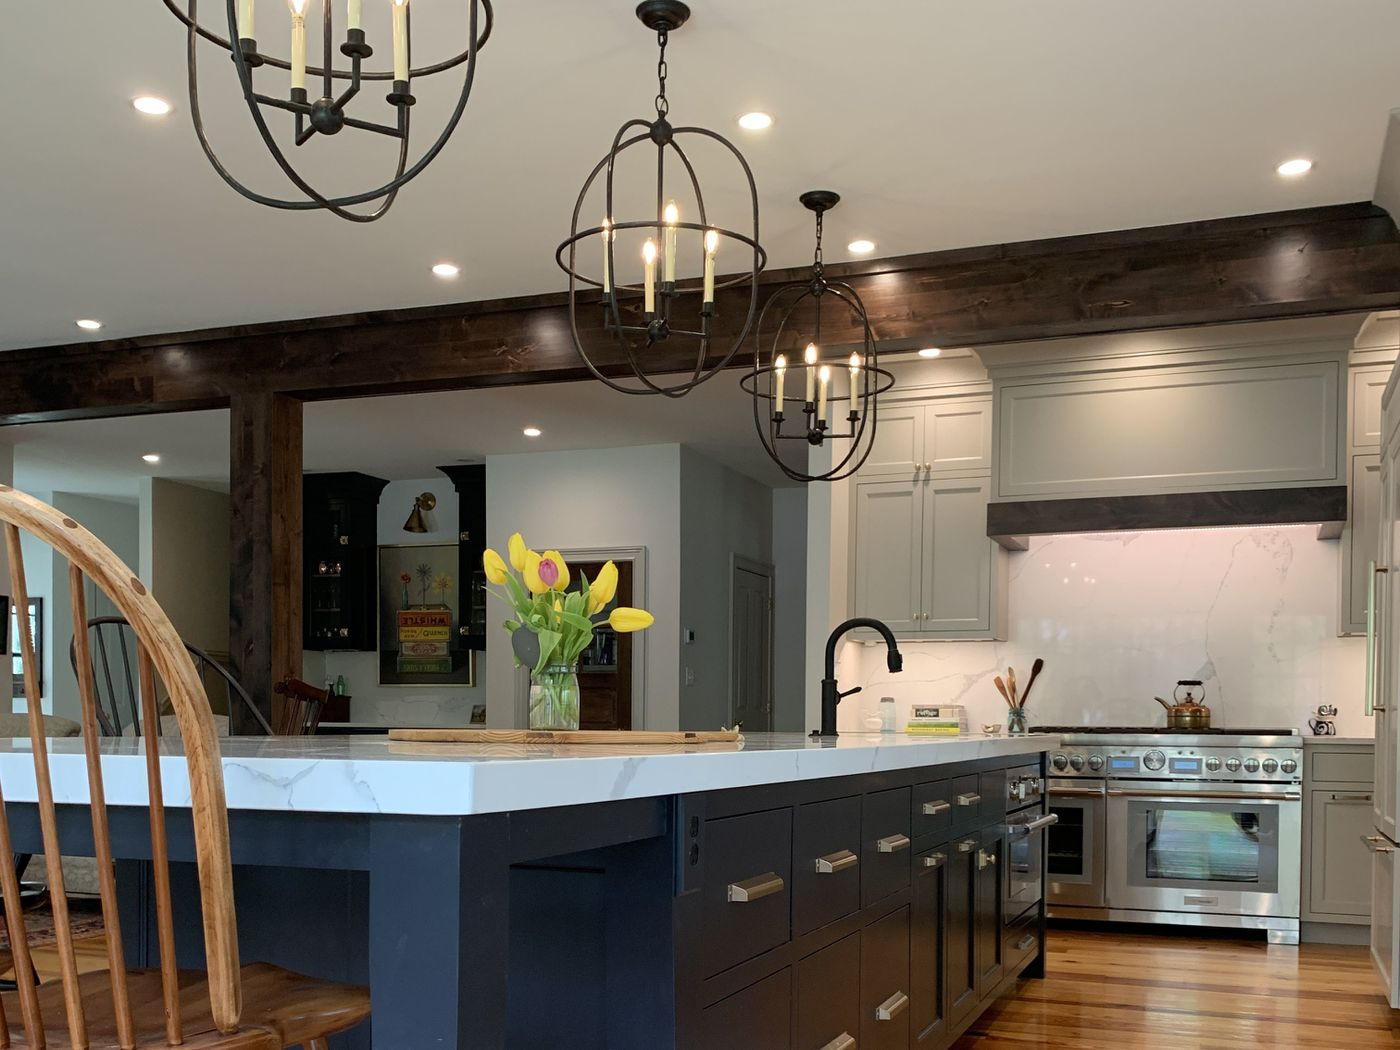 Kitchen Islands Create A Hub For Cooking Dining Entertaining And Socializing